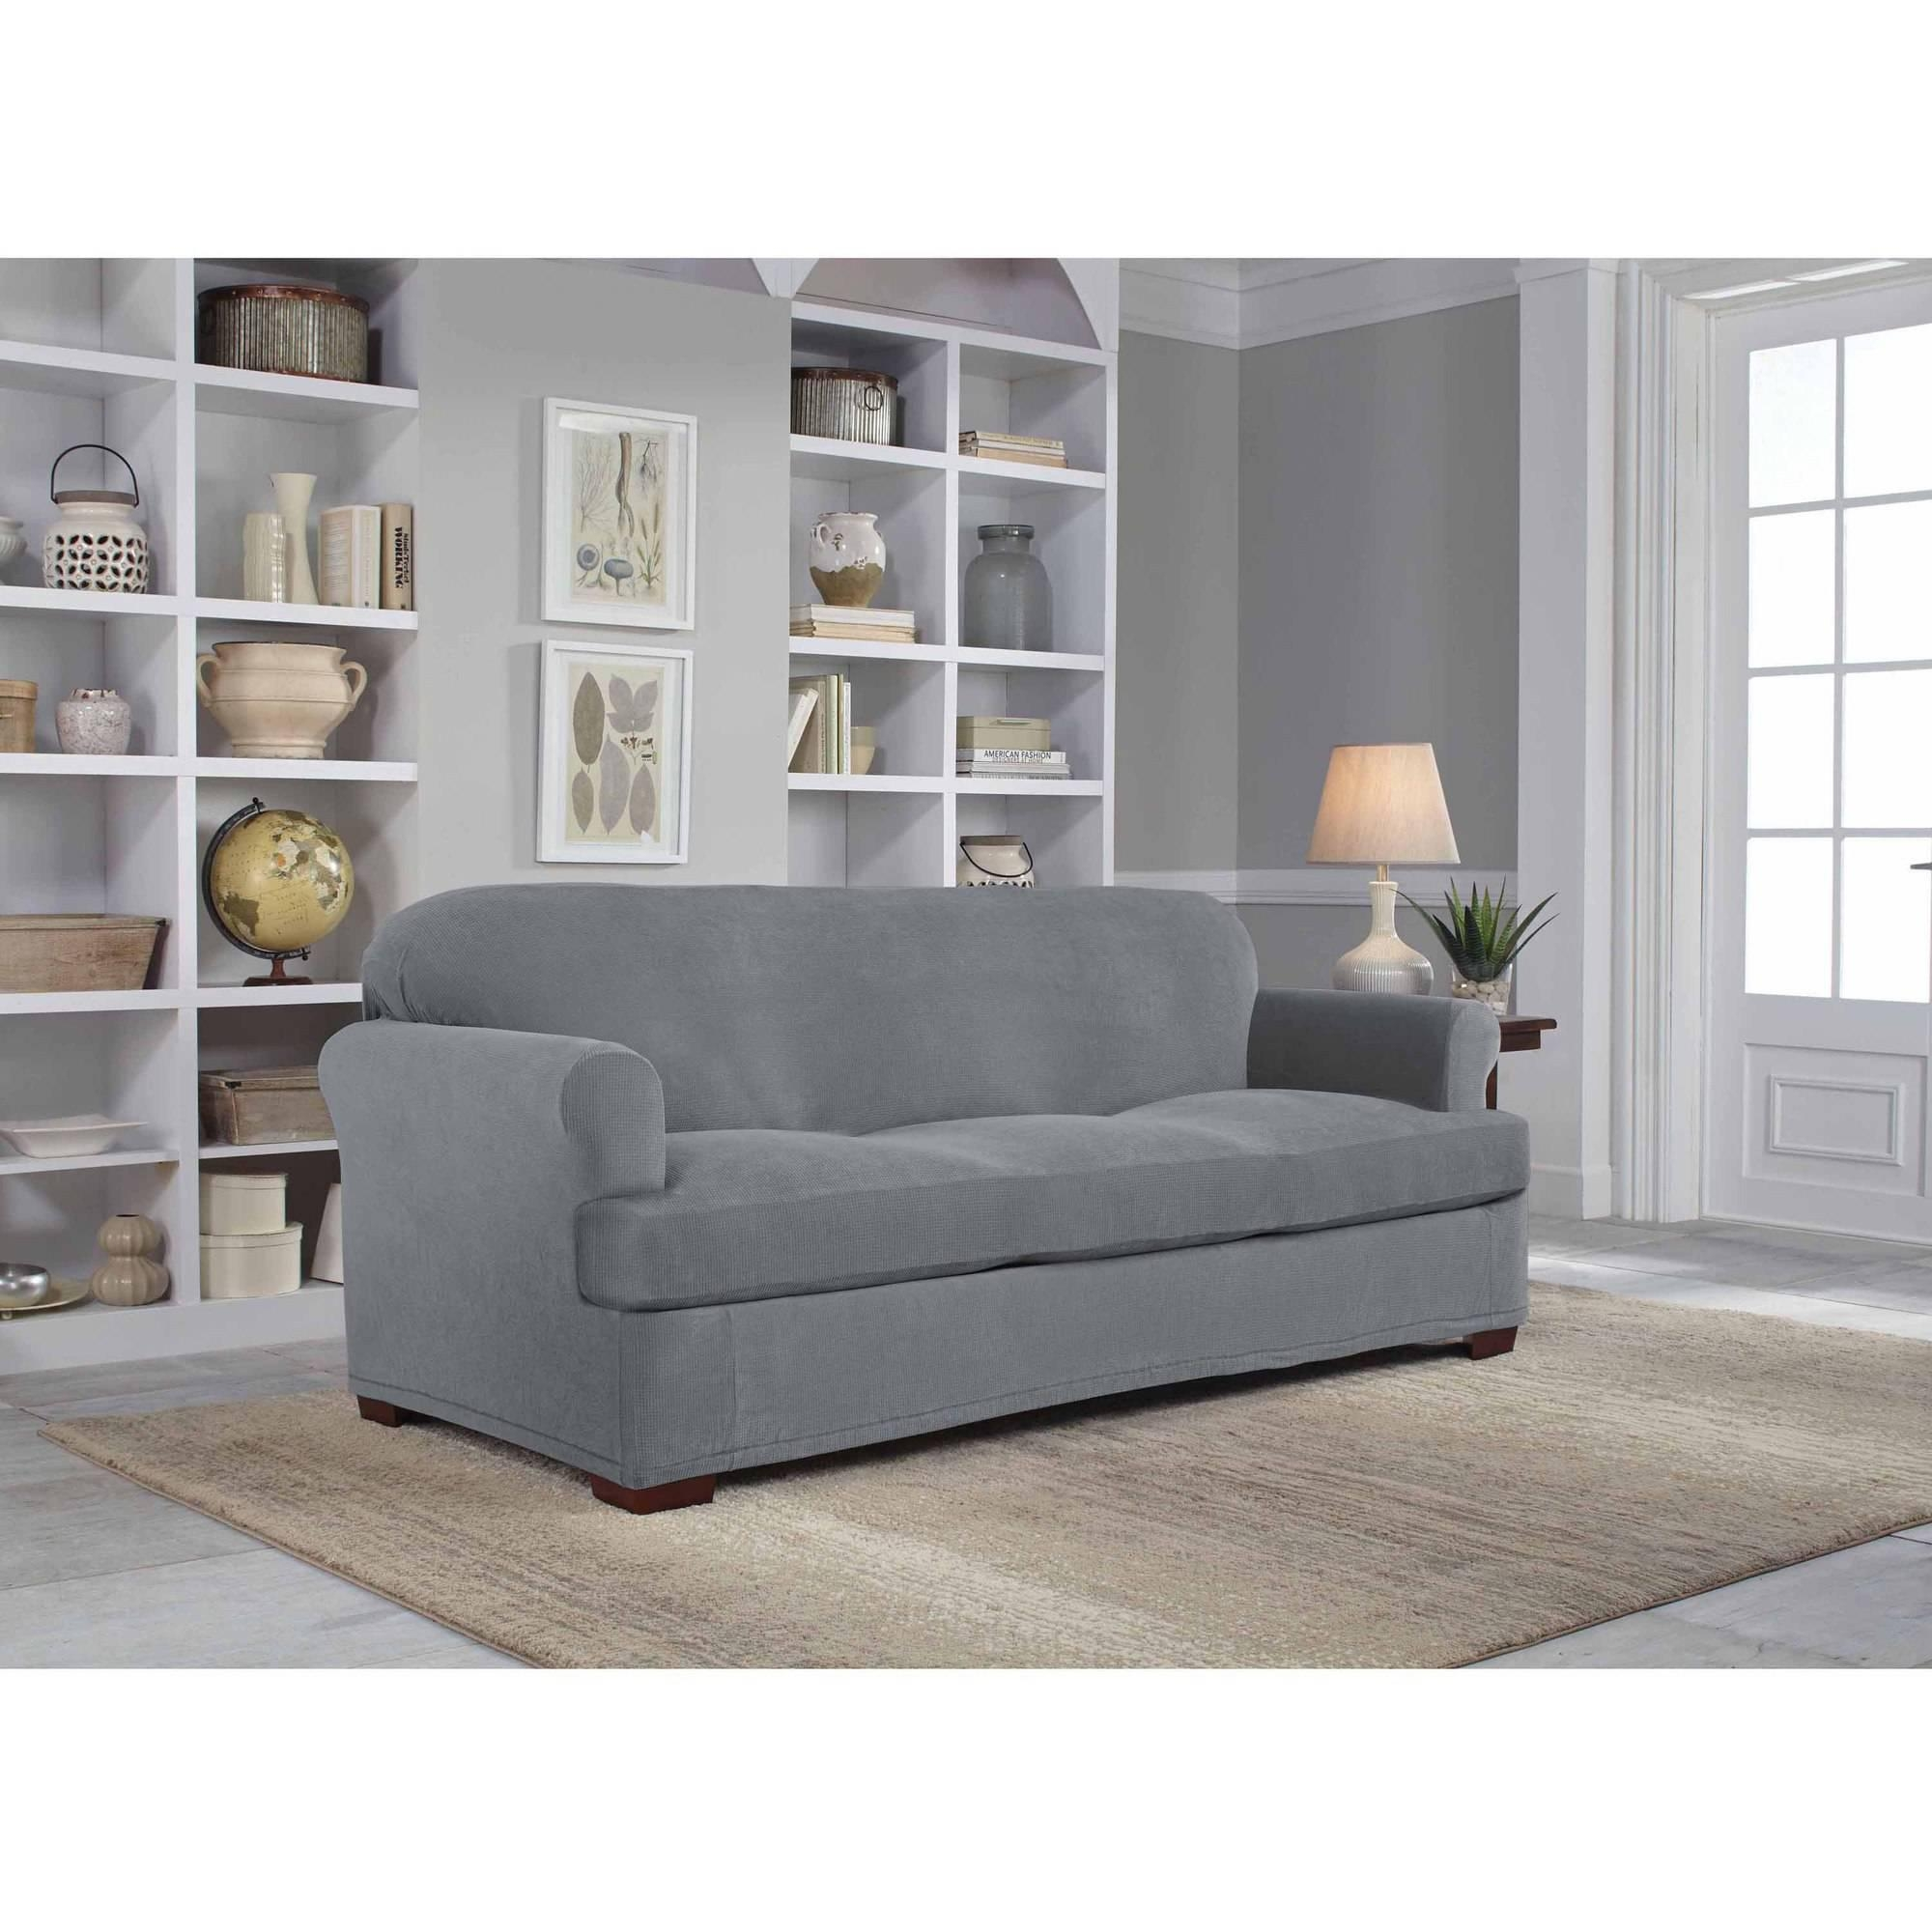 Serta Stretch Grid Slipcover, Sofa, 2 Piece T Cushion – Walmart With Stretch Slipcovers For Sofas (Image 12 of 20)